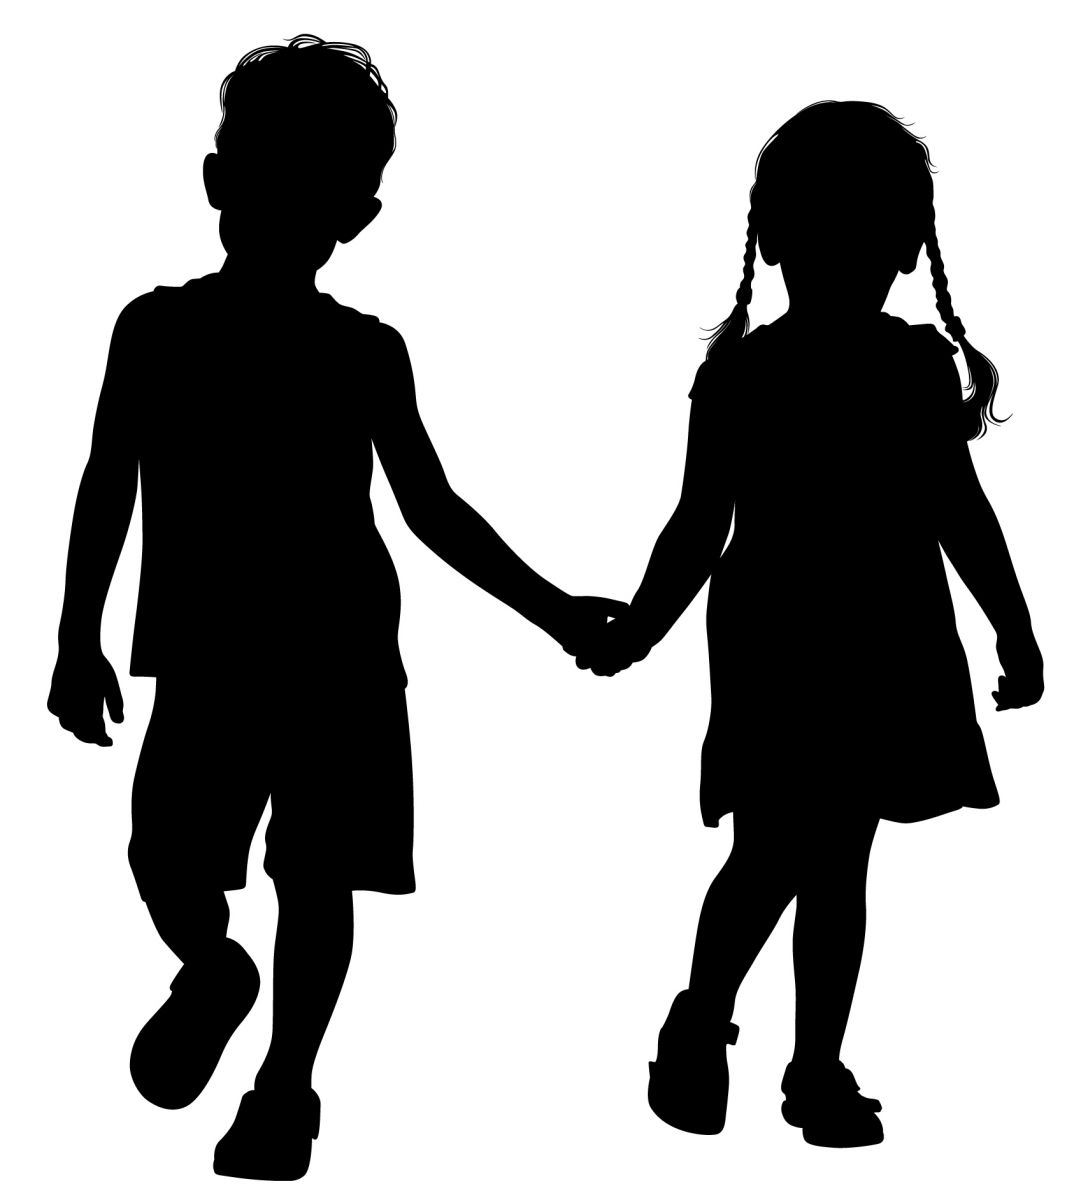 1081x1200 Helping Hands Black And White Clipart